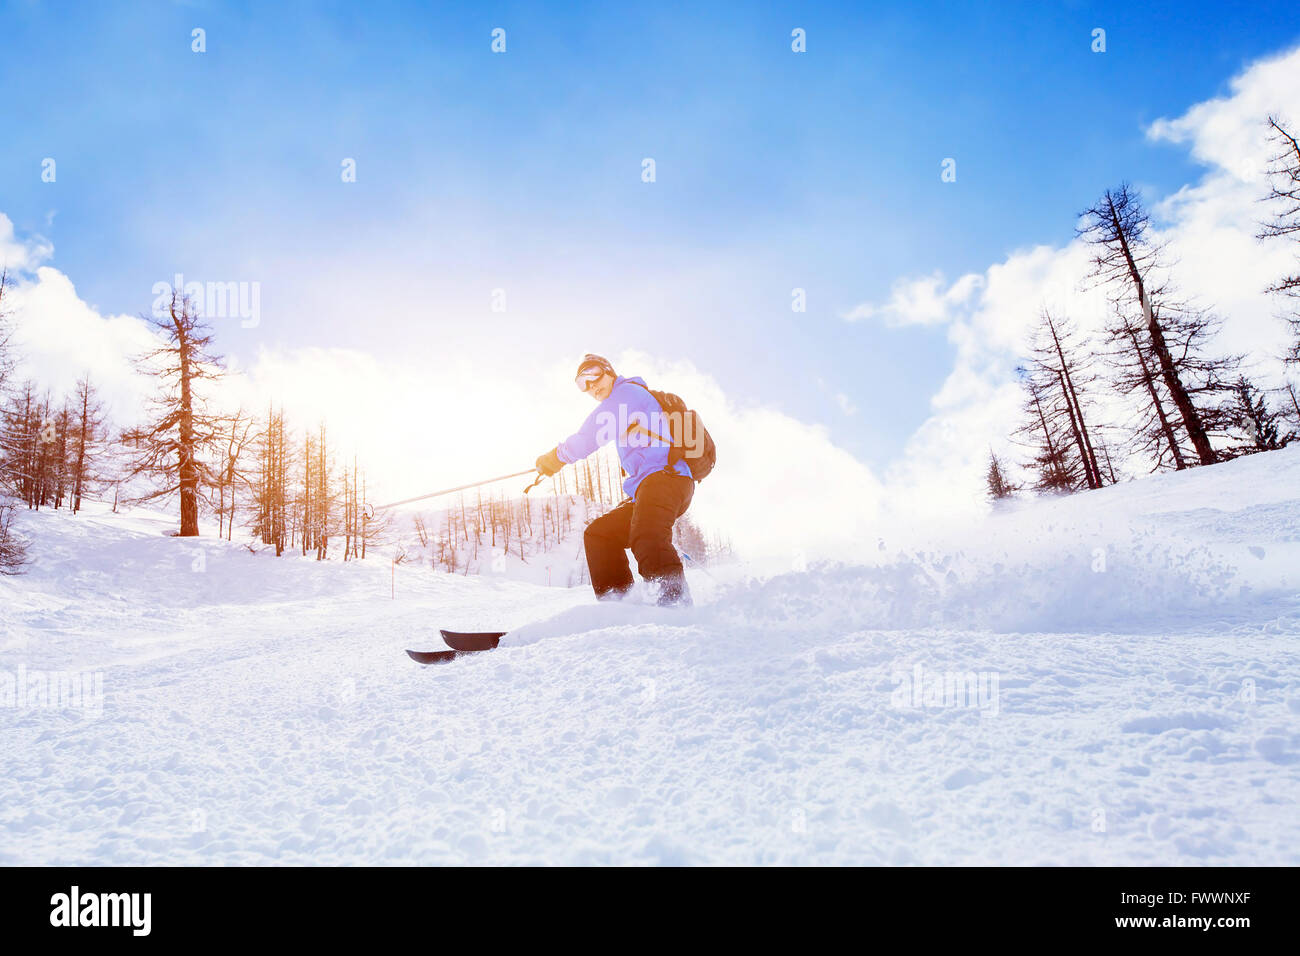 skiing downhill in winter mountains - Stock Image